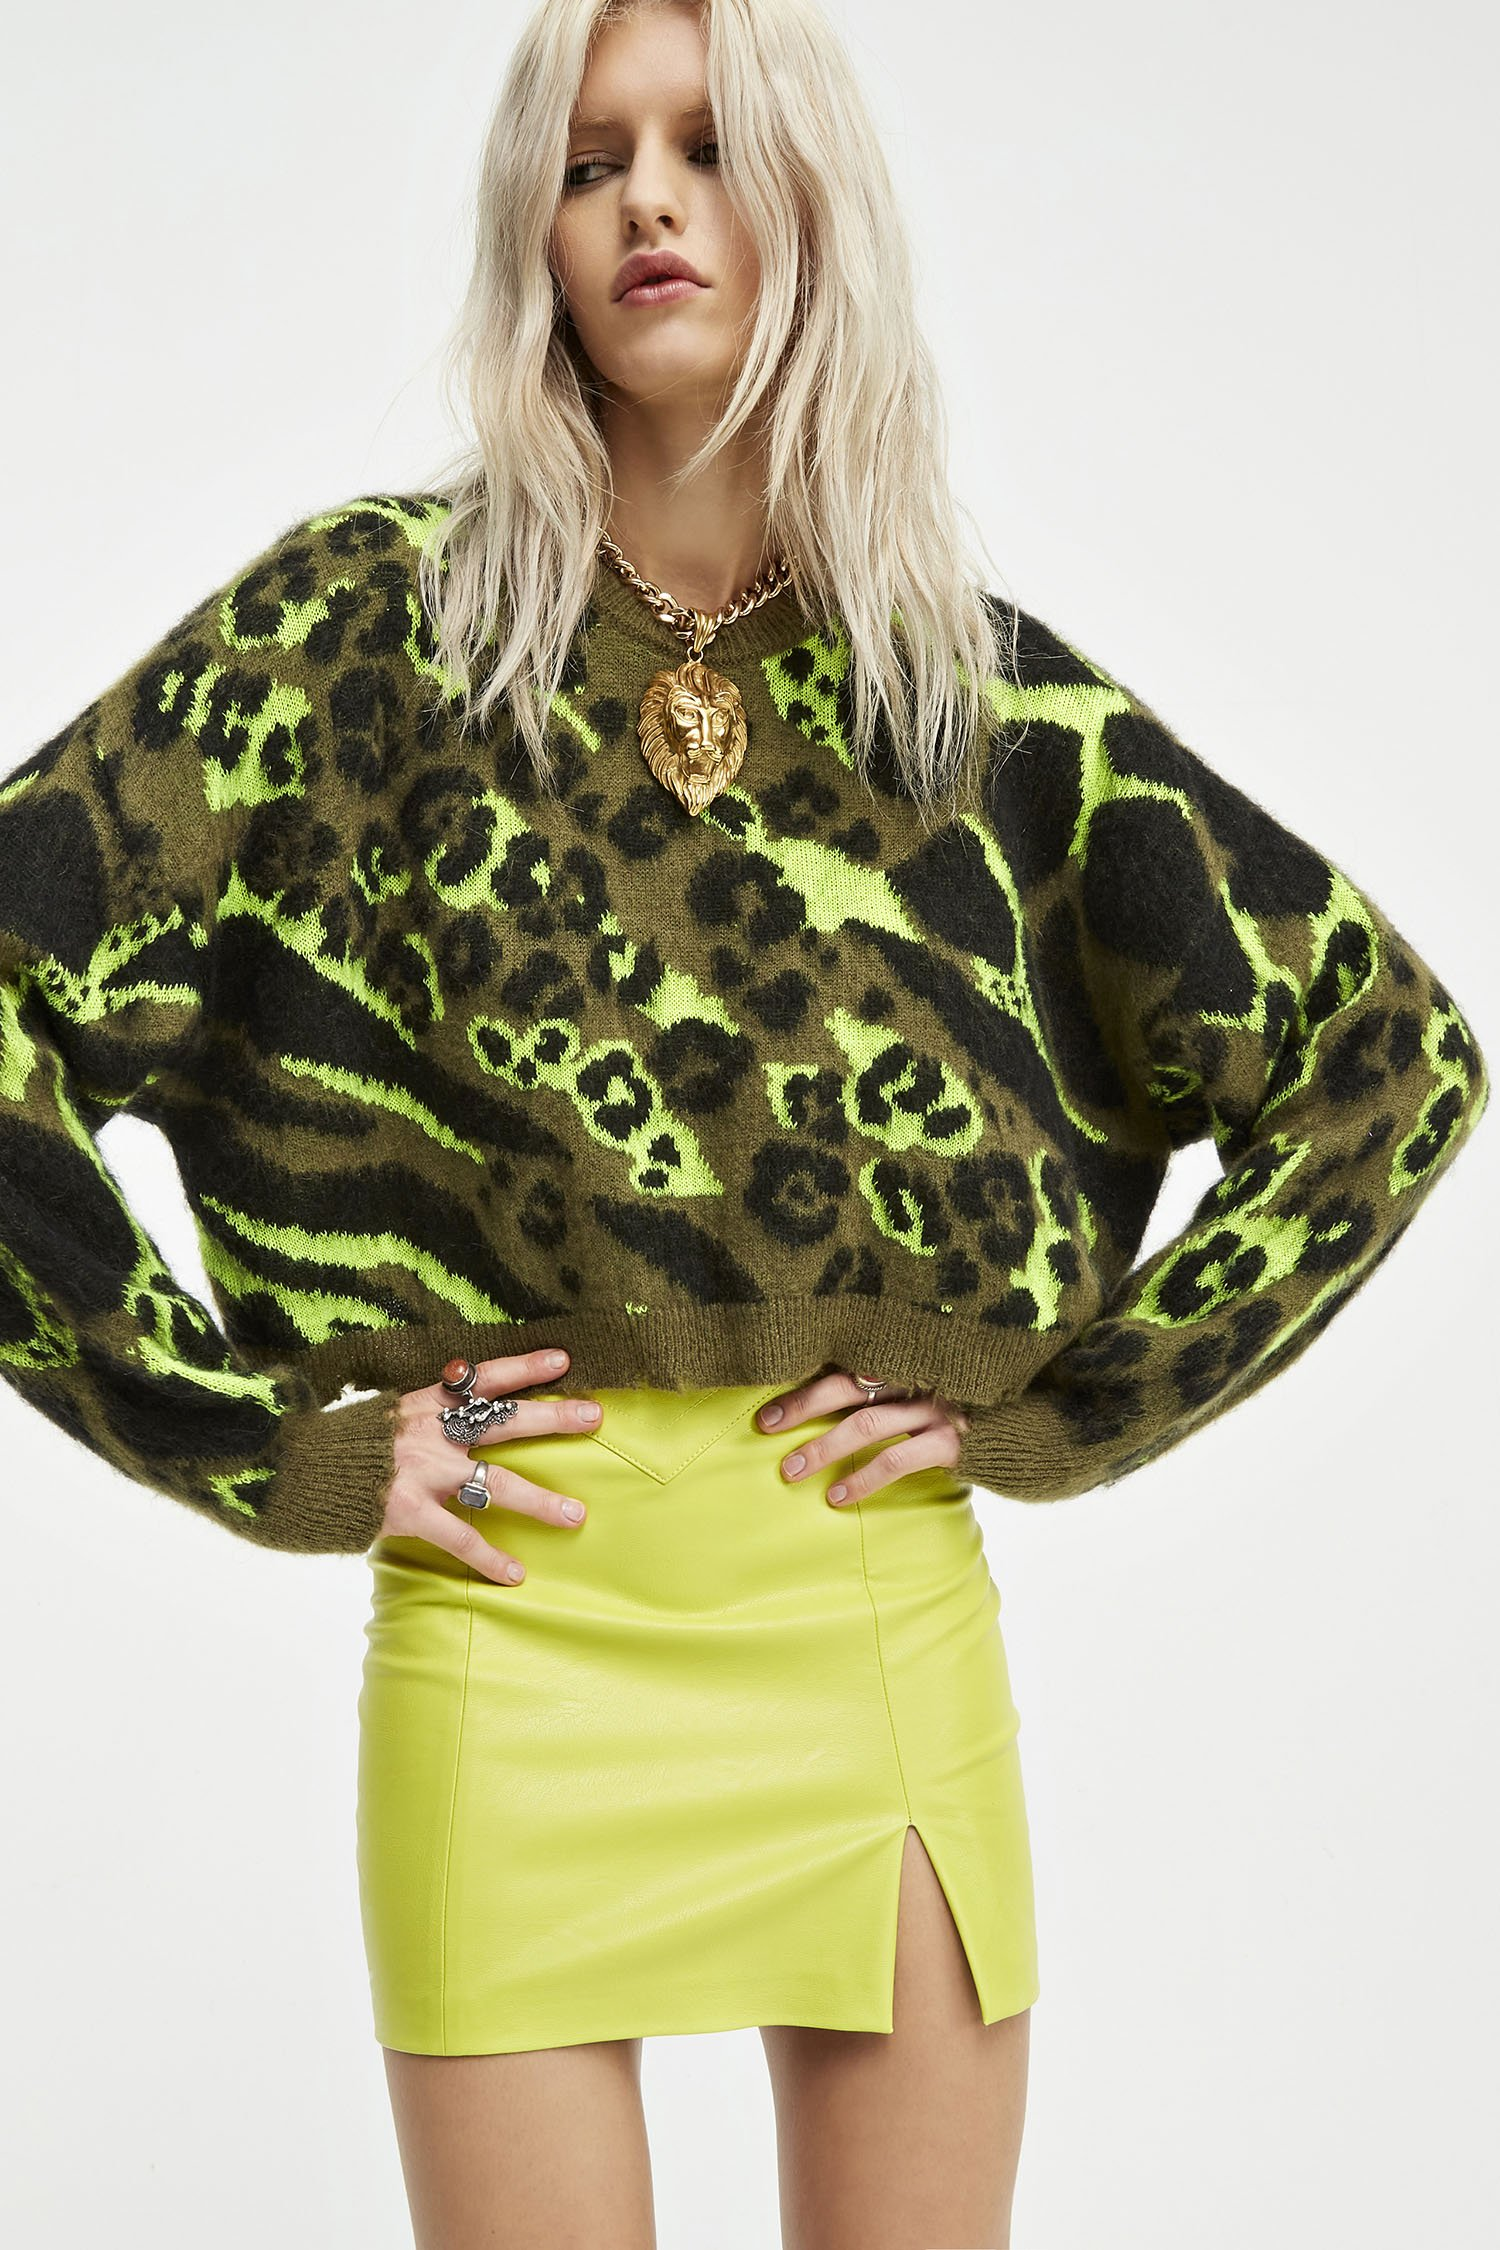 SHOPPING ON LINE ANIYE BY  PULLOVER CROP CAMOU  NEW COLLECTION  WOMEN'S FALL/WINTER 2022-2